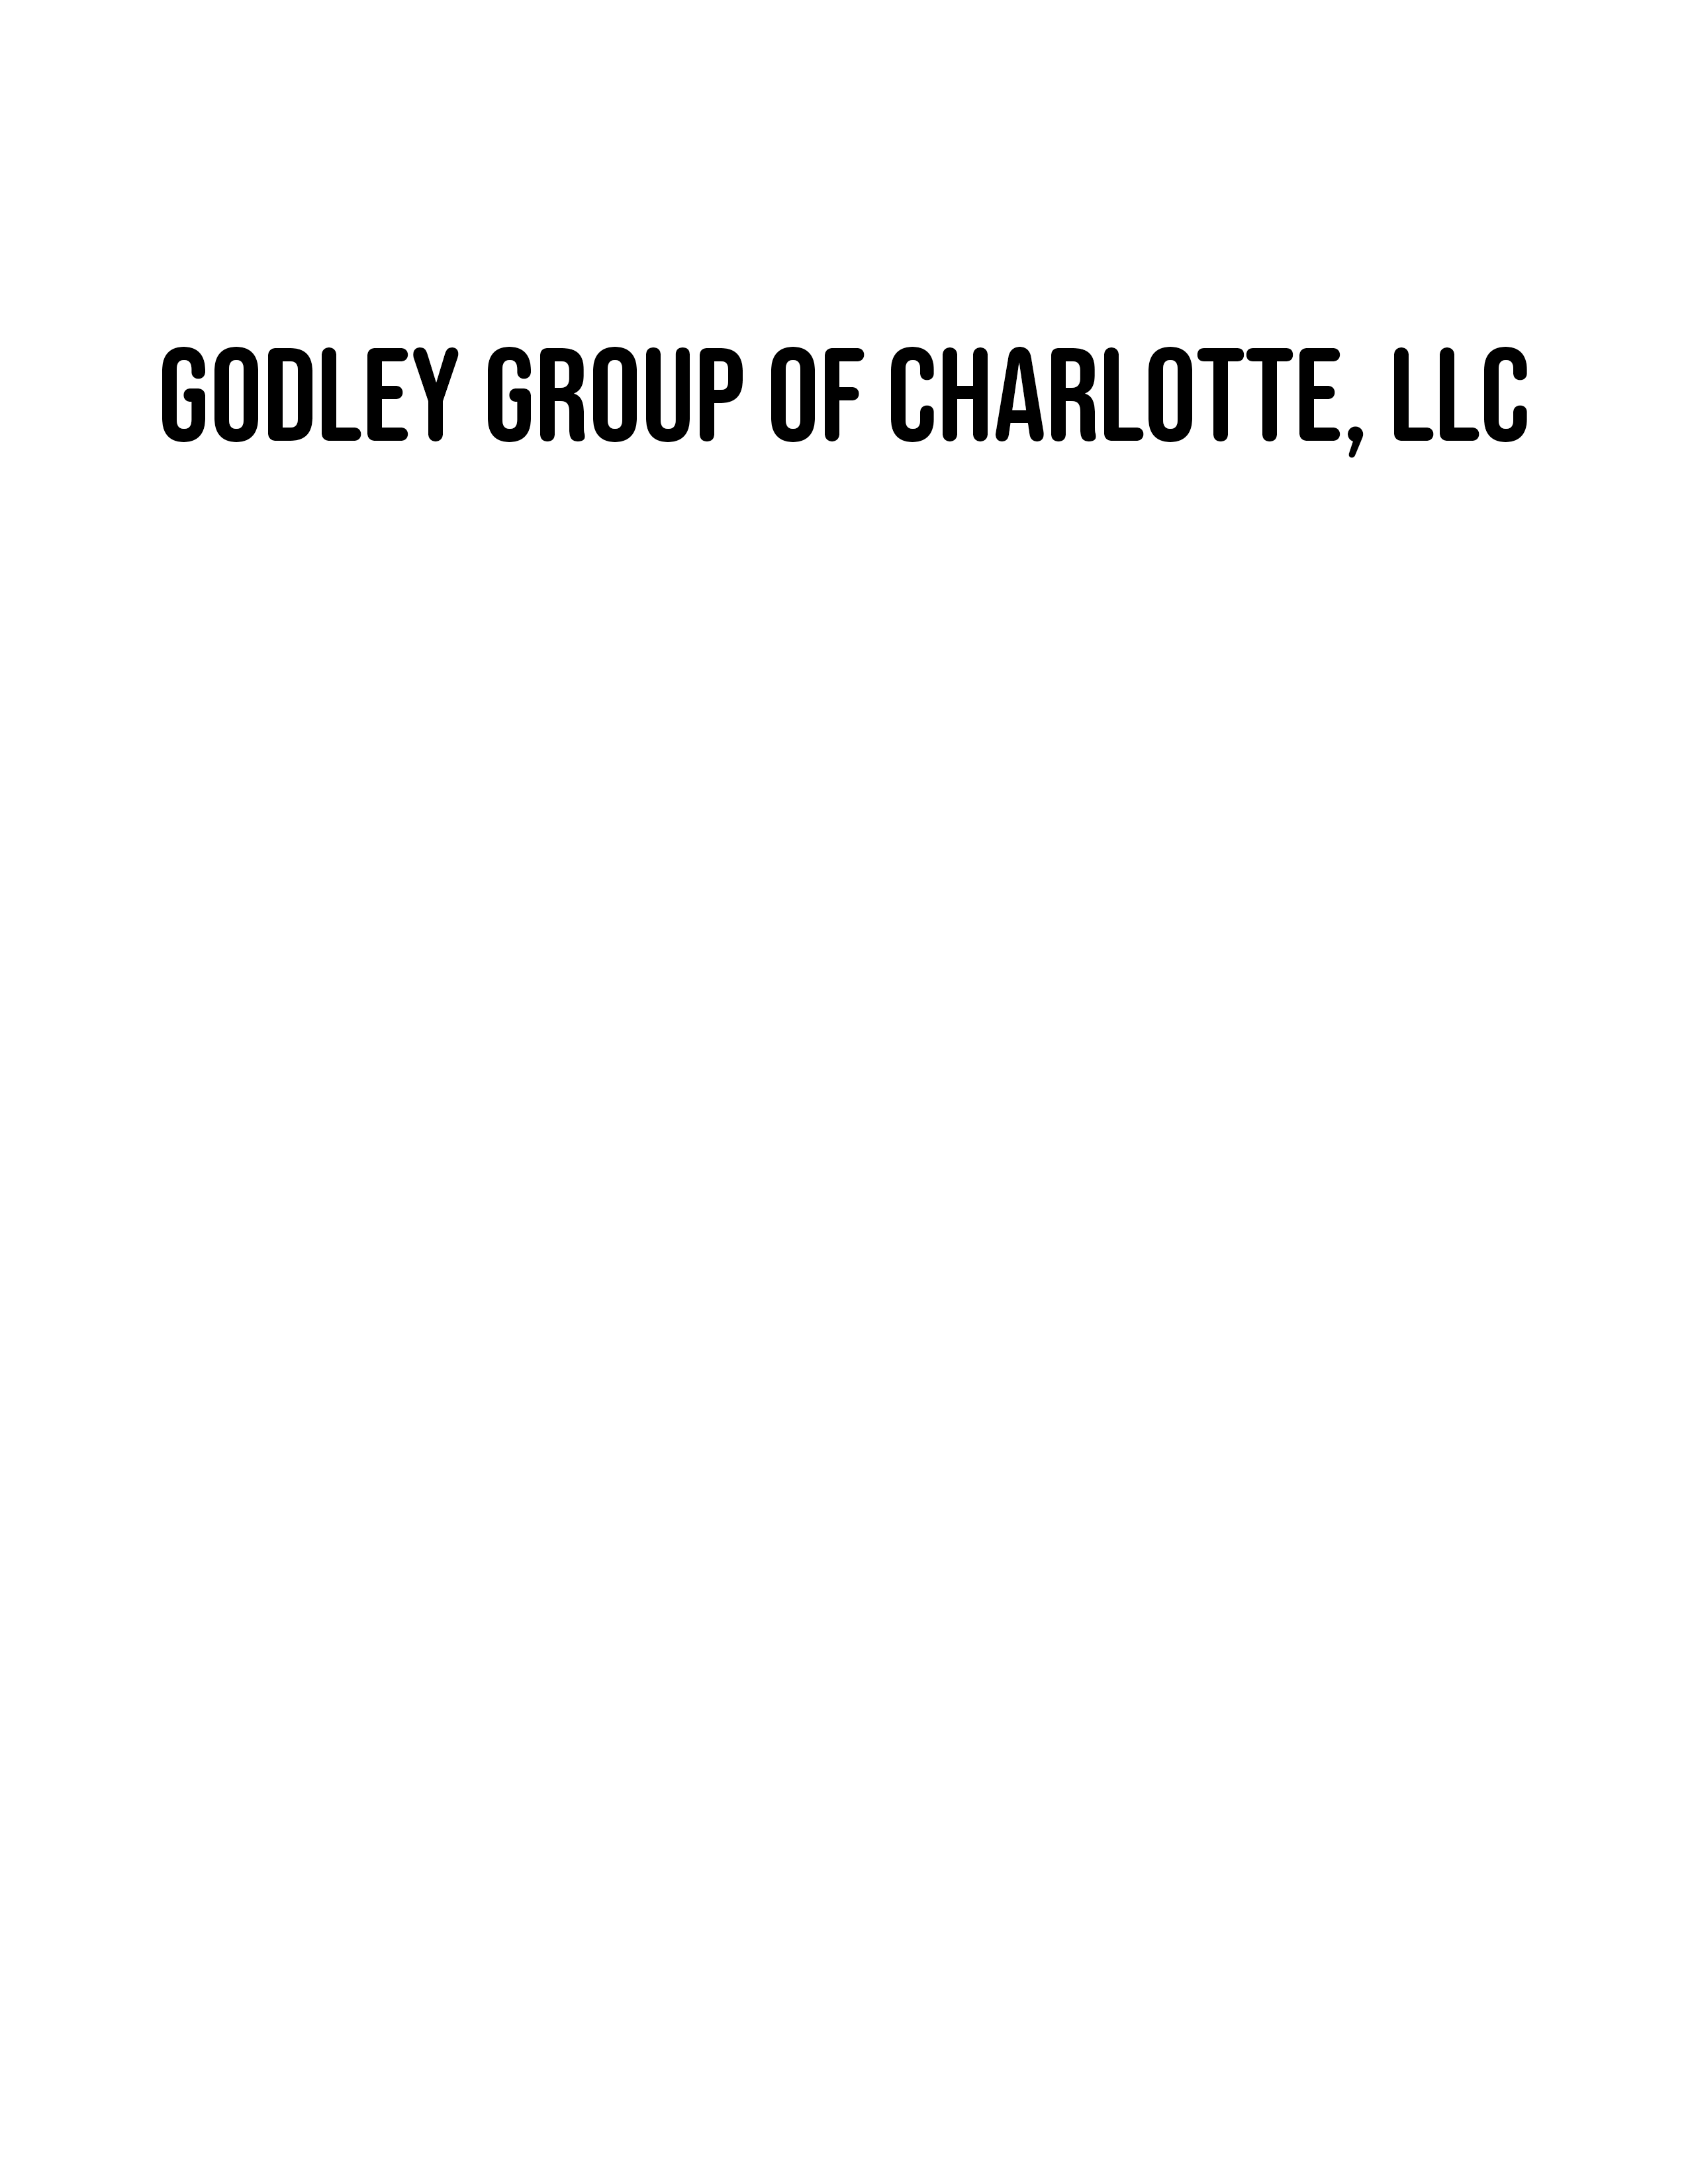 Godley Group of Charlotte, LLC